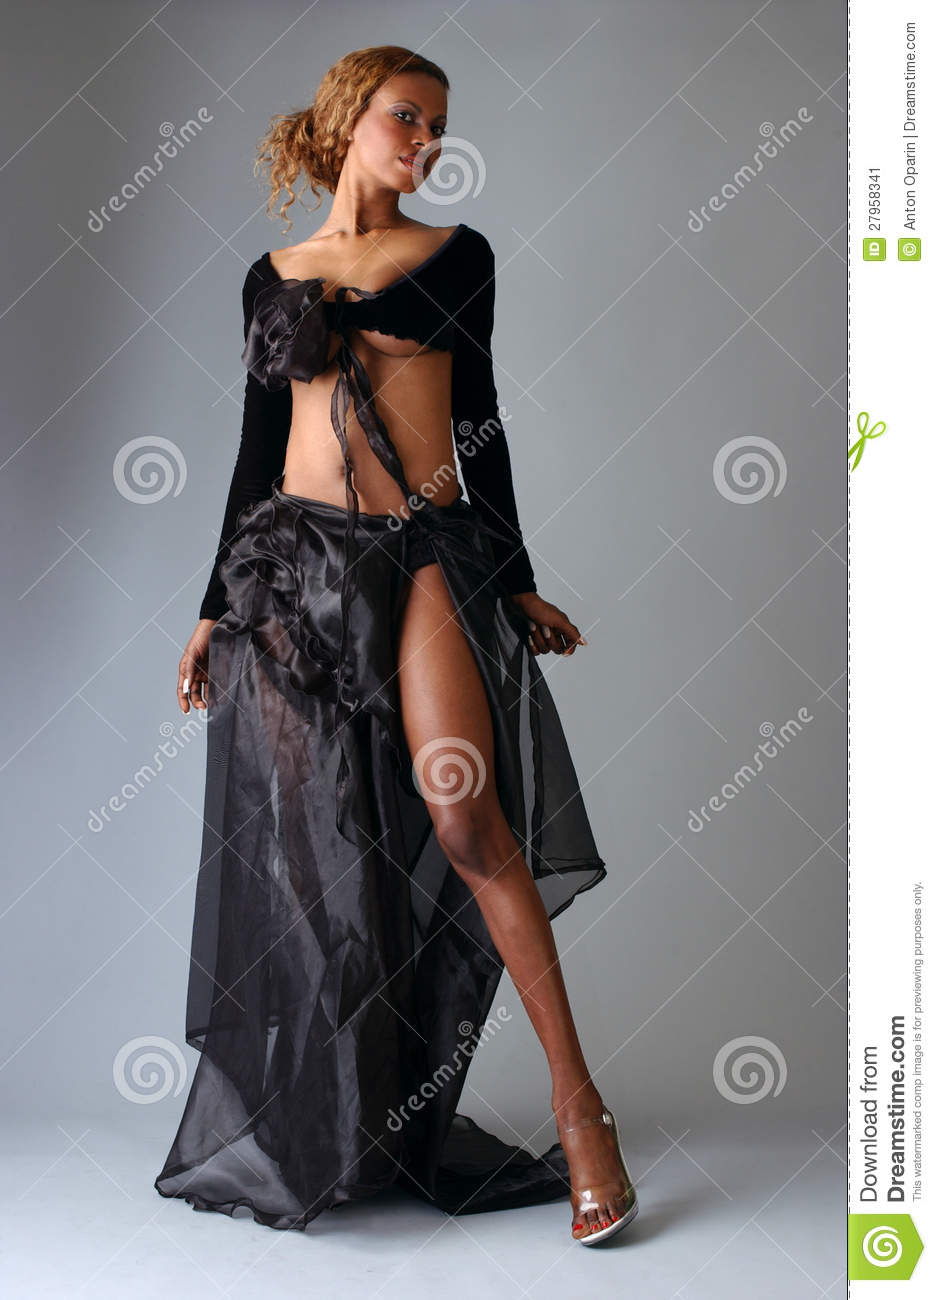 223fd4cac32 Beautiful African American model posing classy wearing fashionable dresses